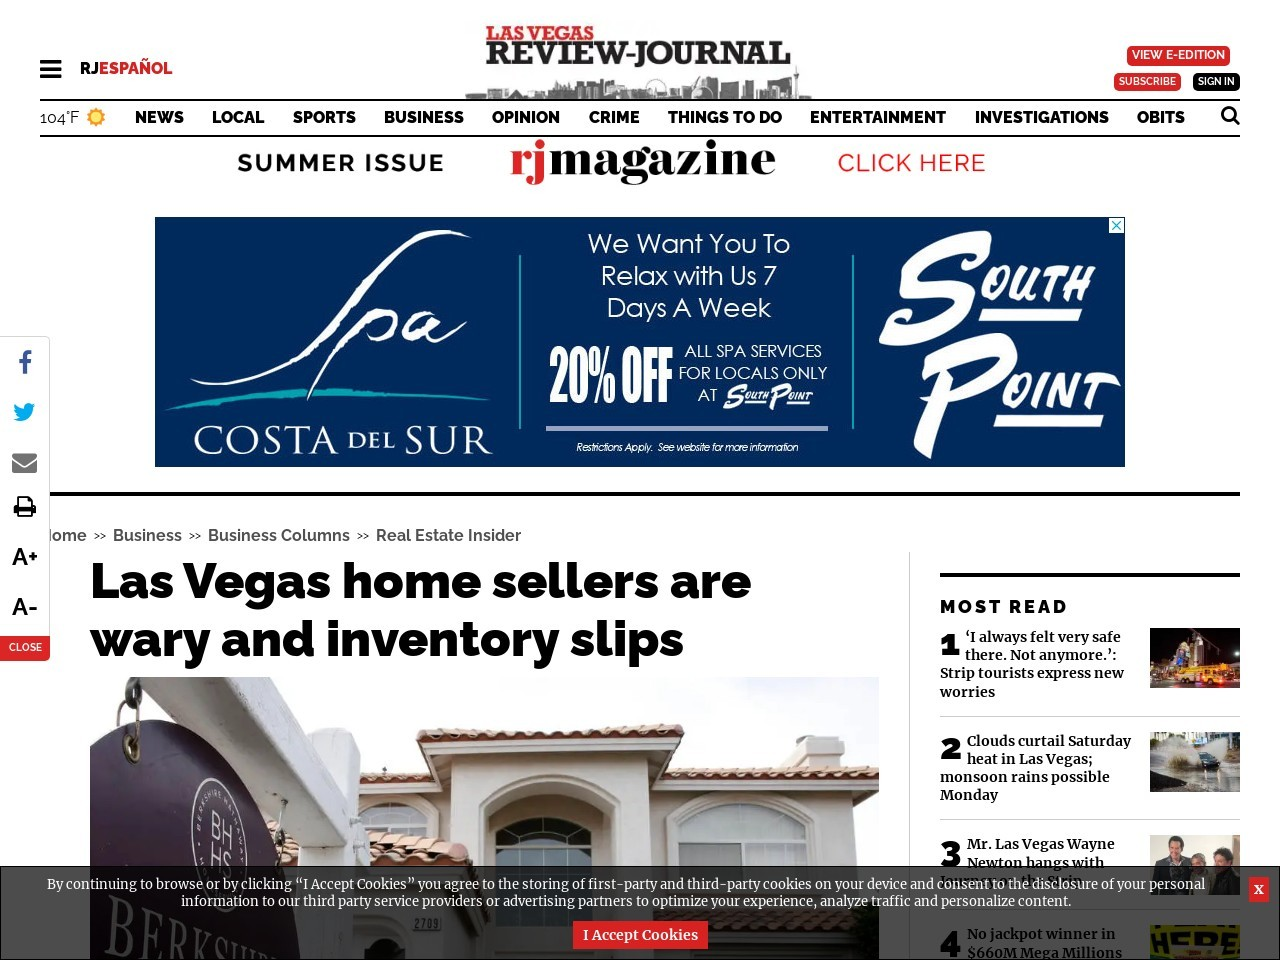 Las Vegas home sellers are wary and inventory slips